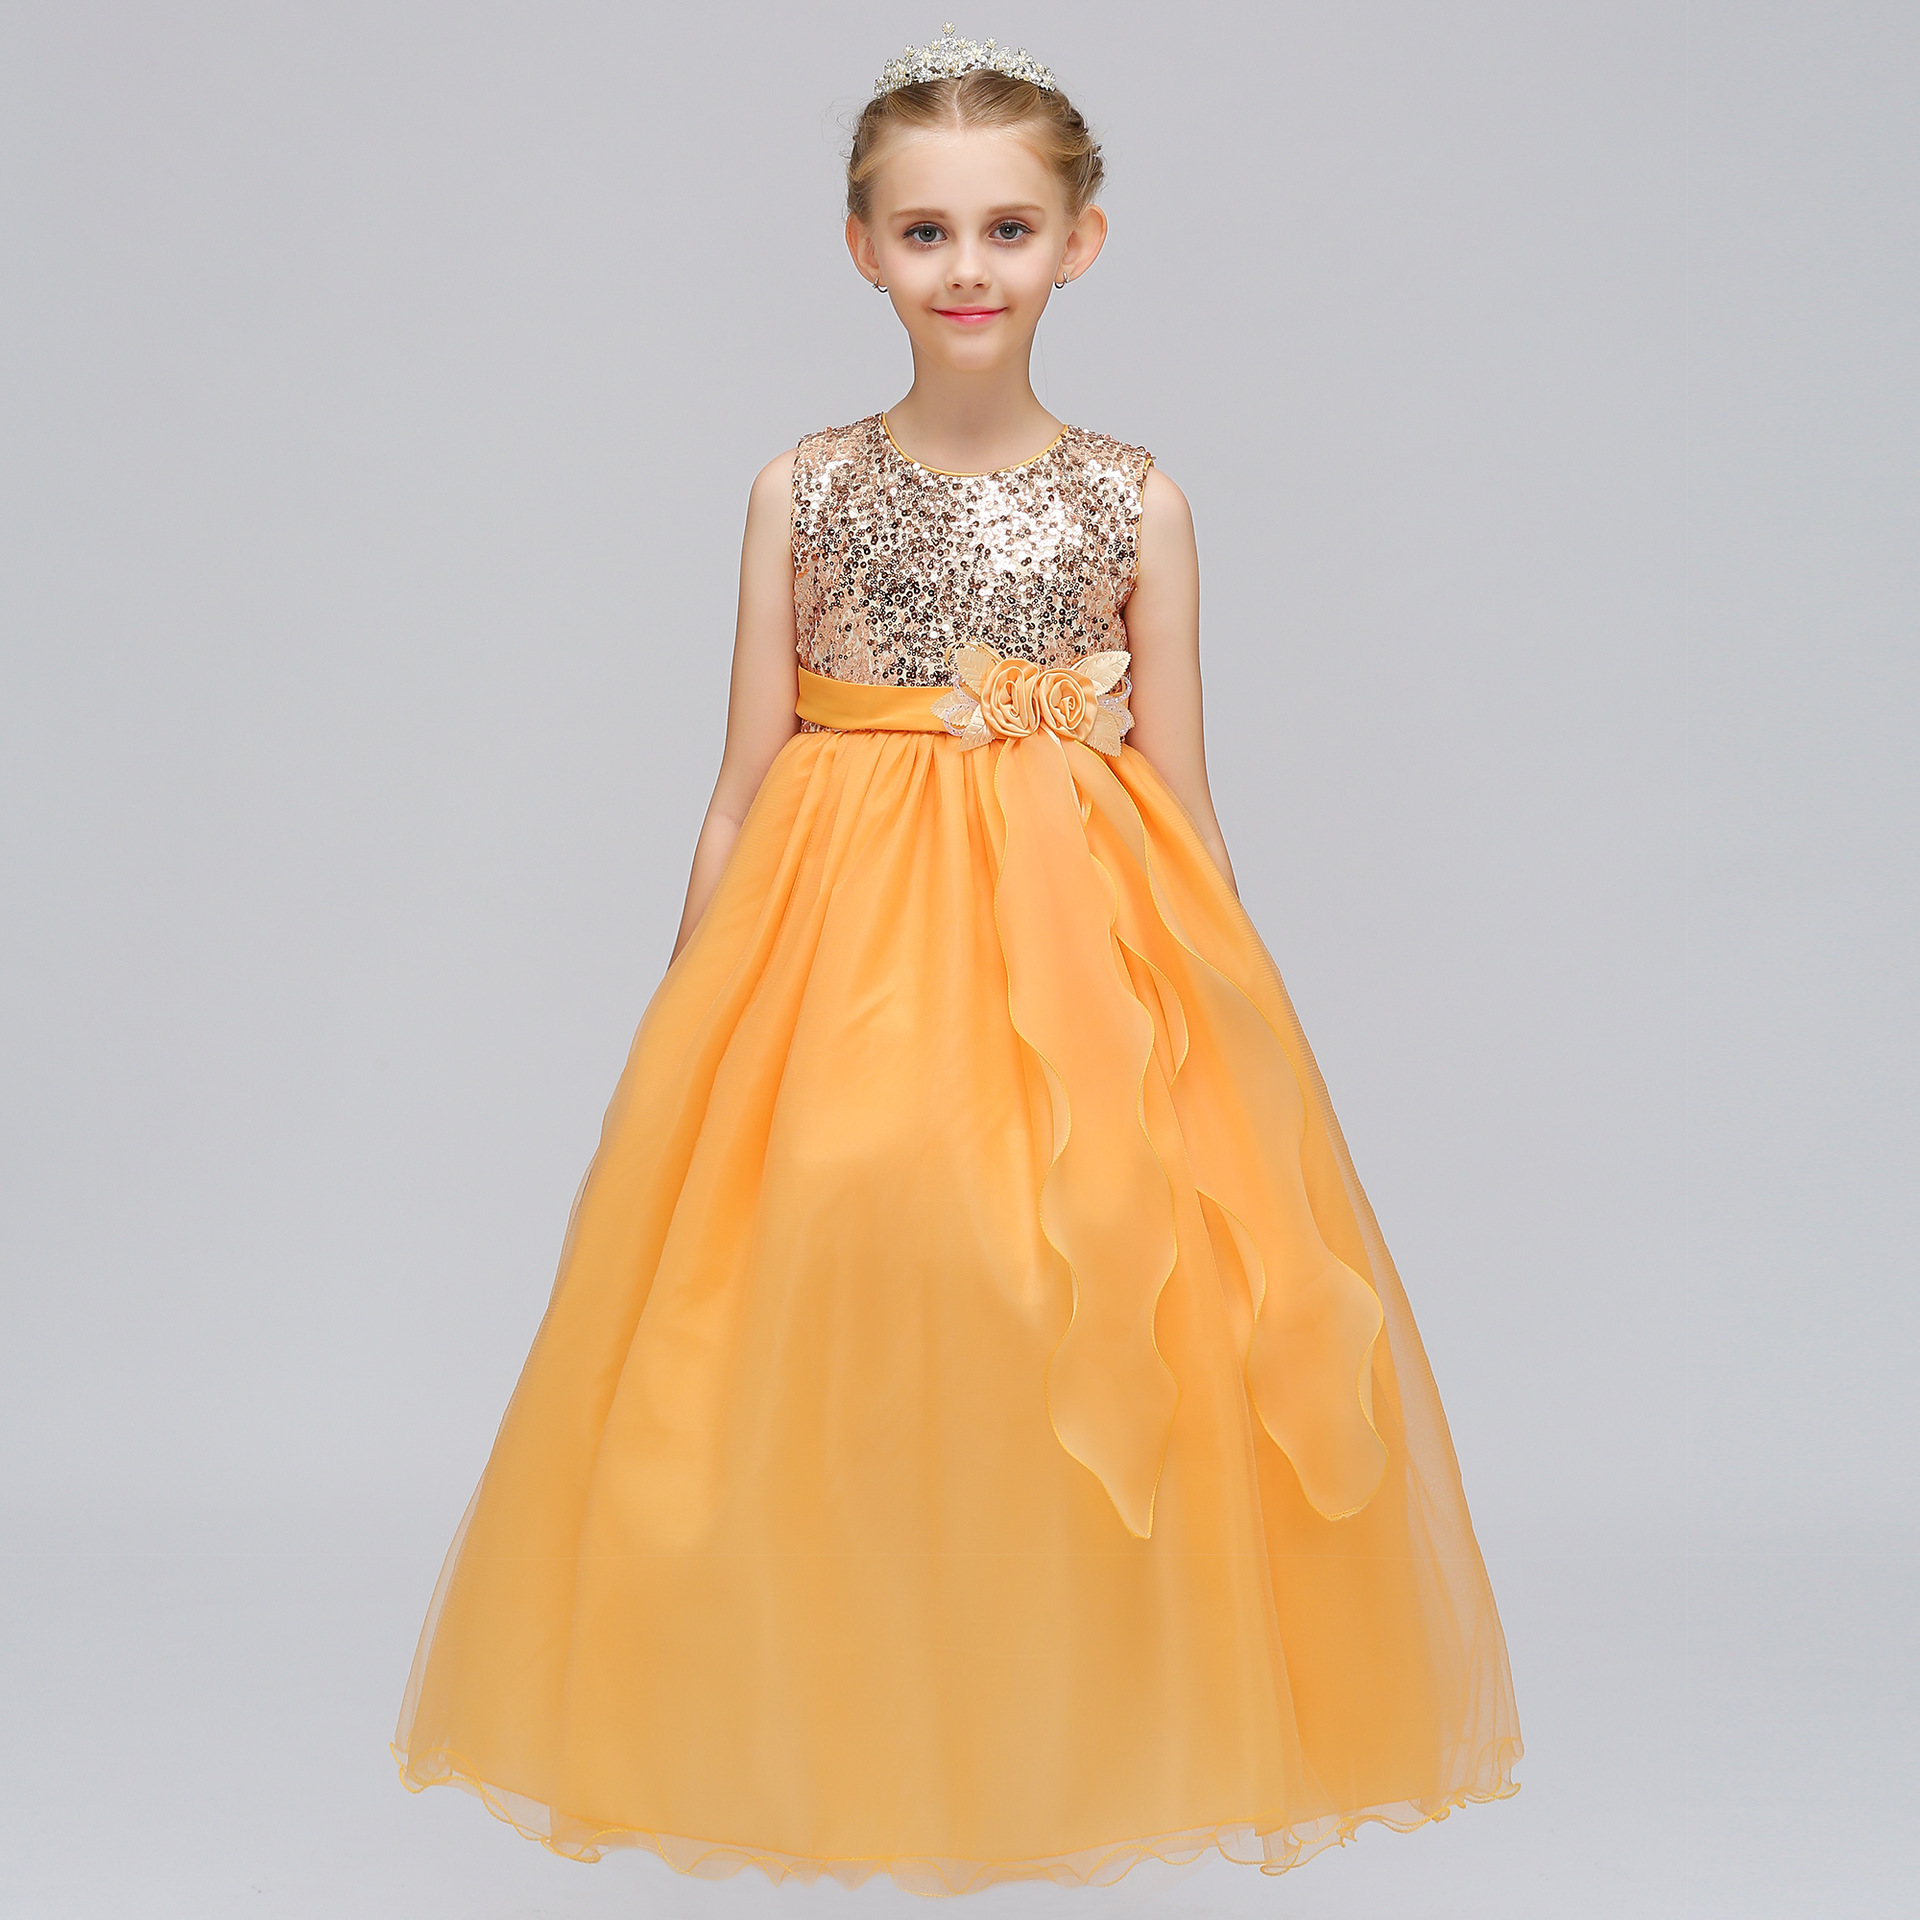 Enfant Robe Cocktail Mariage Et Evenement Yellow Dress Long Gowns Gold Sequin Prom Occas ...